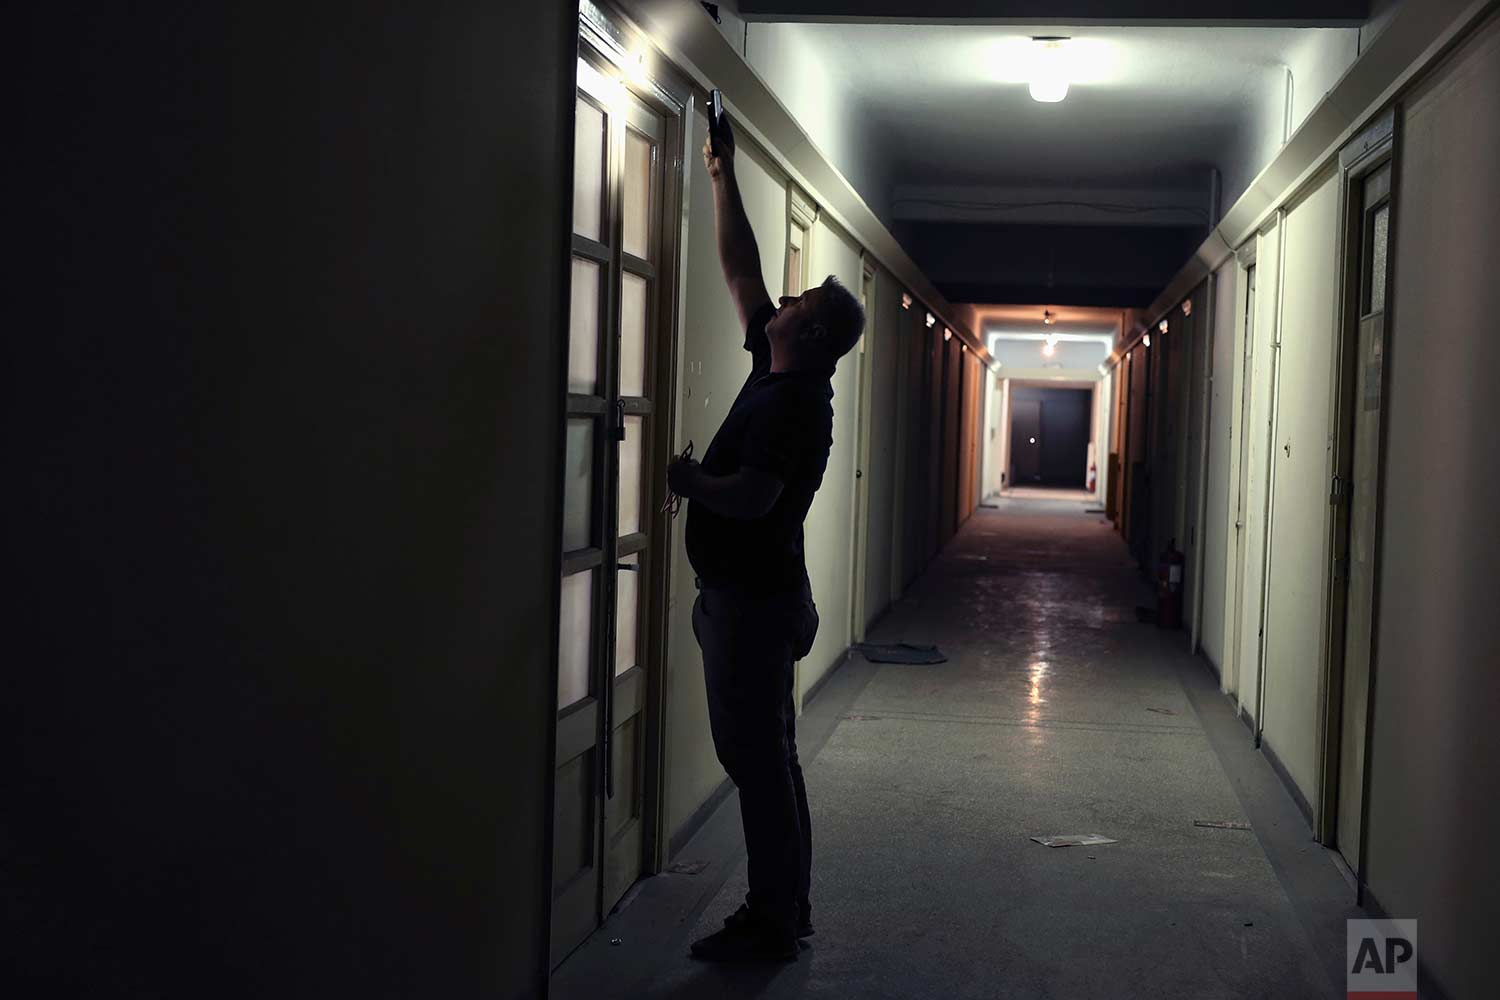 A pension fund employee in an office doorway in one of Athens' few substantial late 19th century buildings to survive brutal postwar development. (AP Photo/Petros Giannakouris)